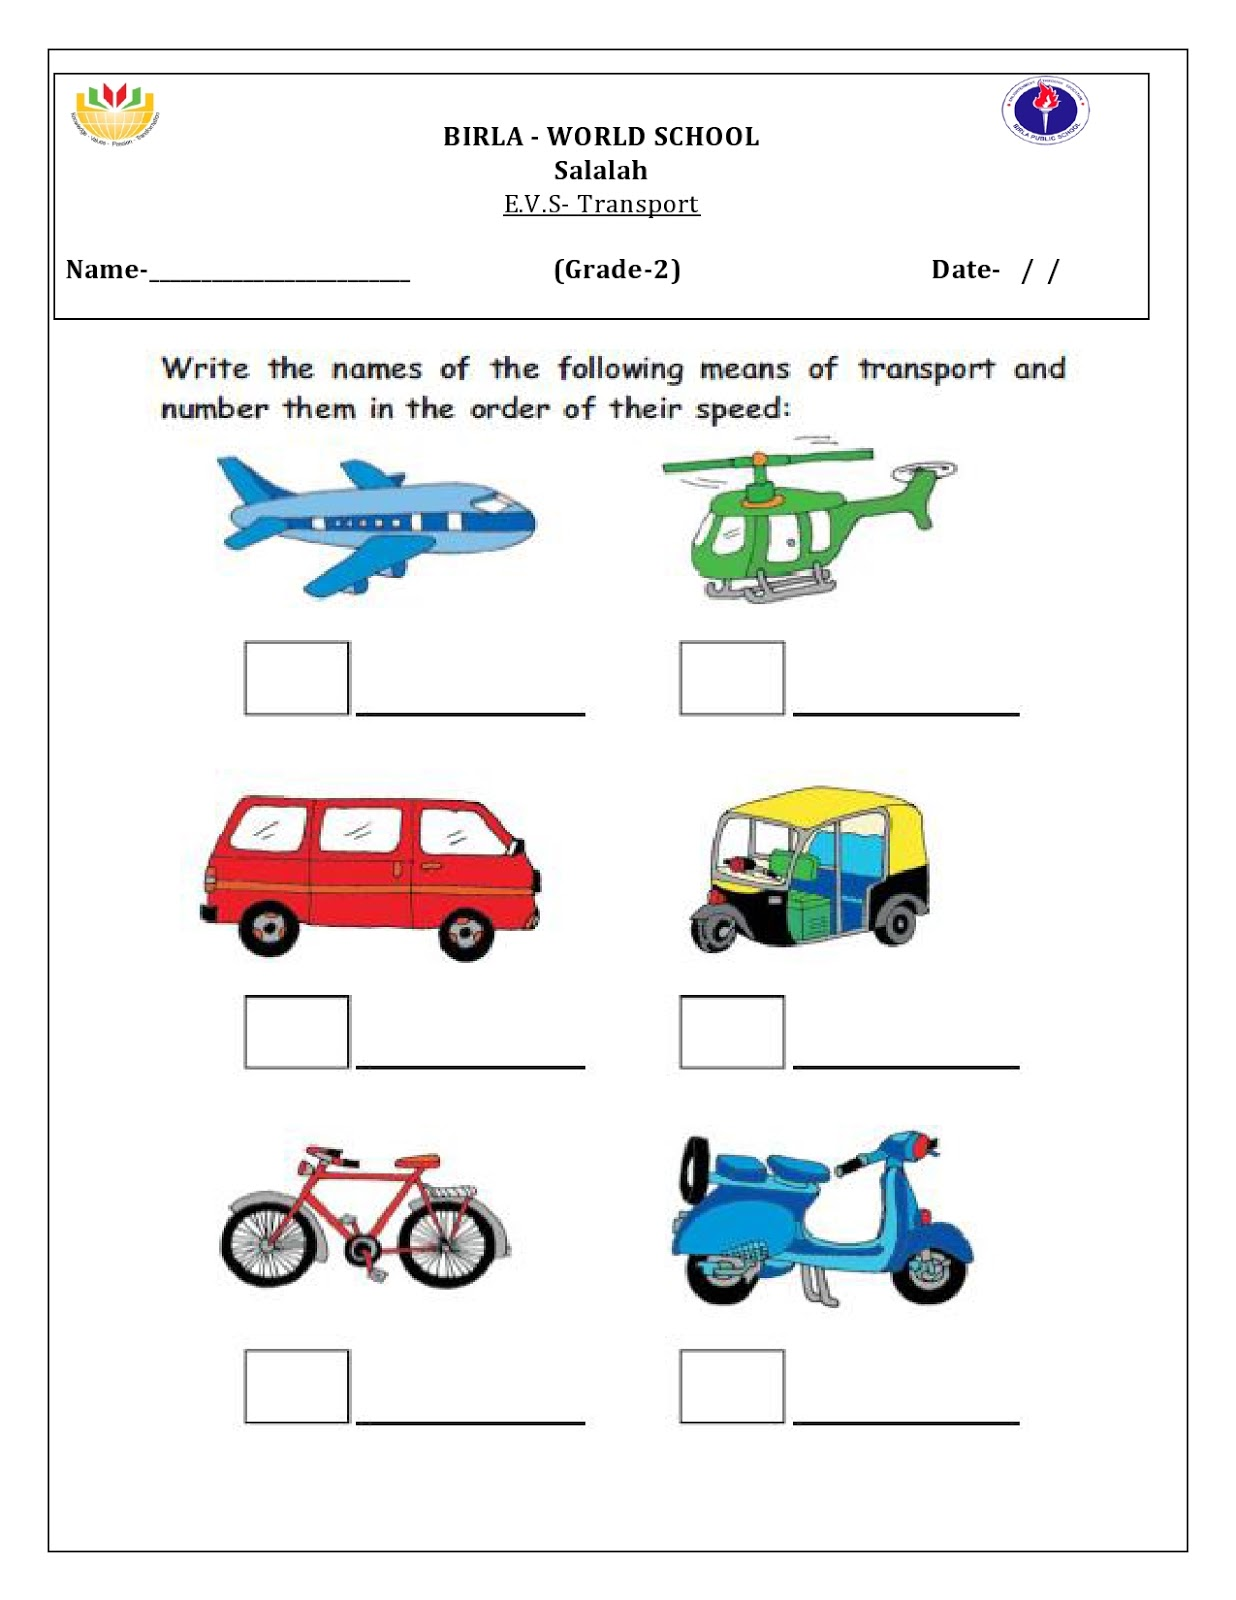 Birla World School Oman Homework For Grade 2 B 25 3 16